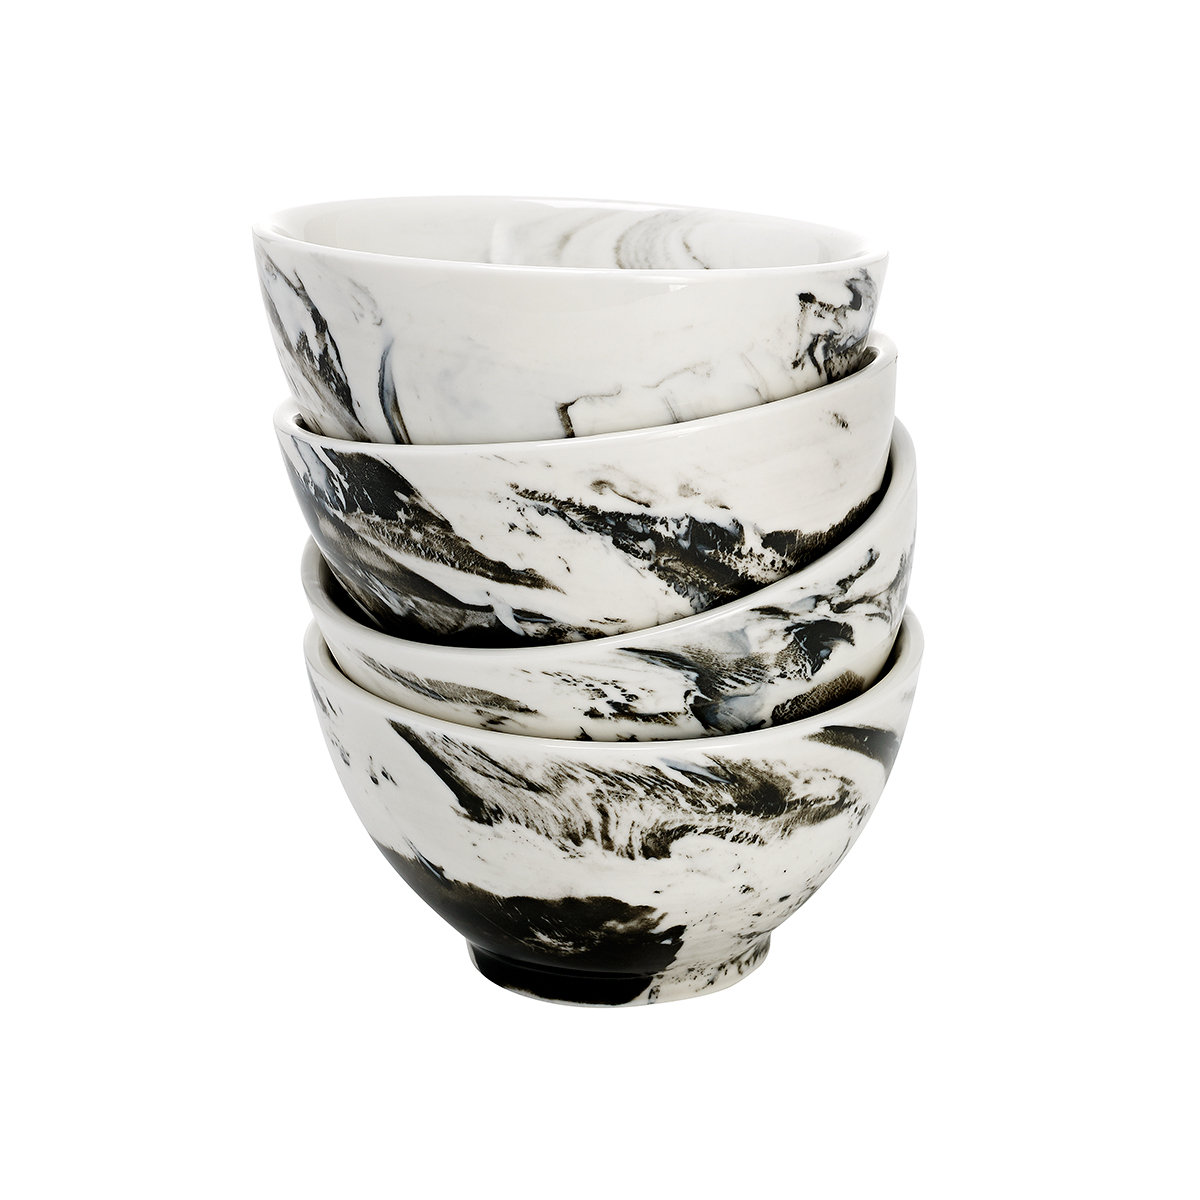 overandback Porcelain Marbled Rice Bowl, set of 4, Gray